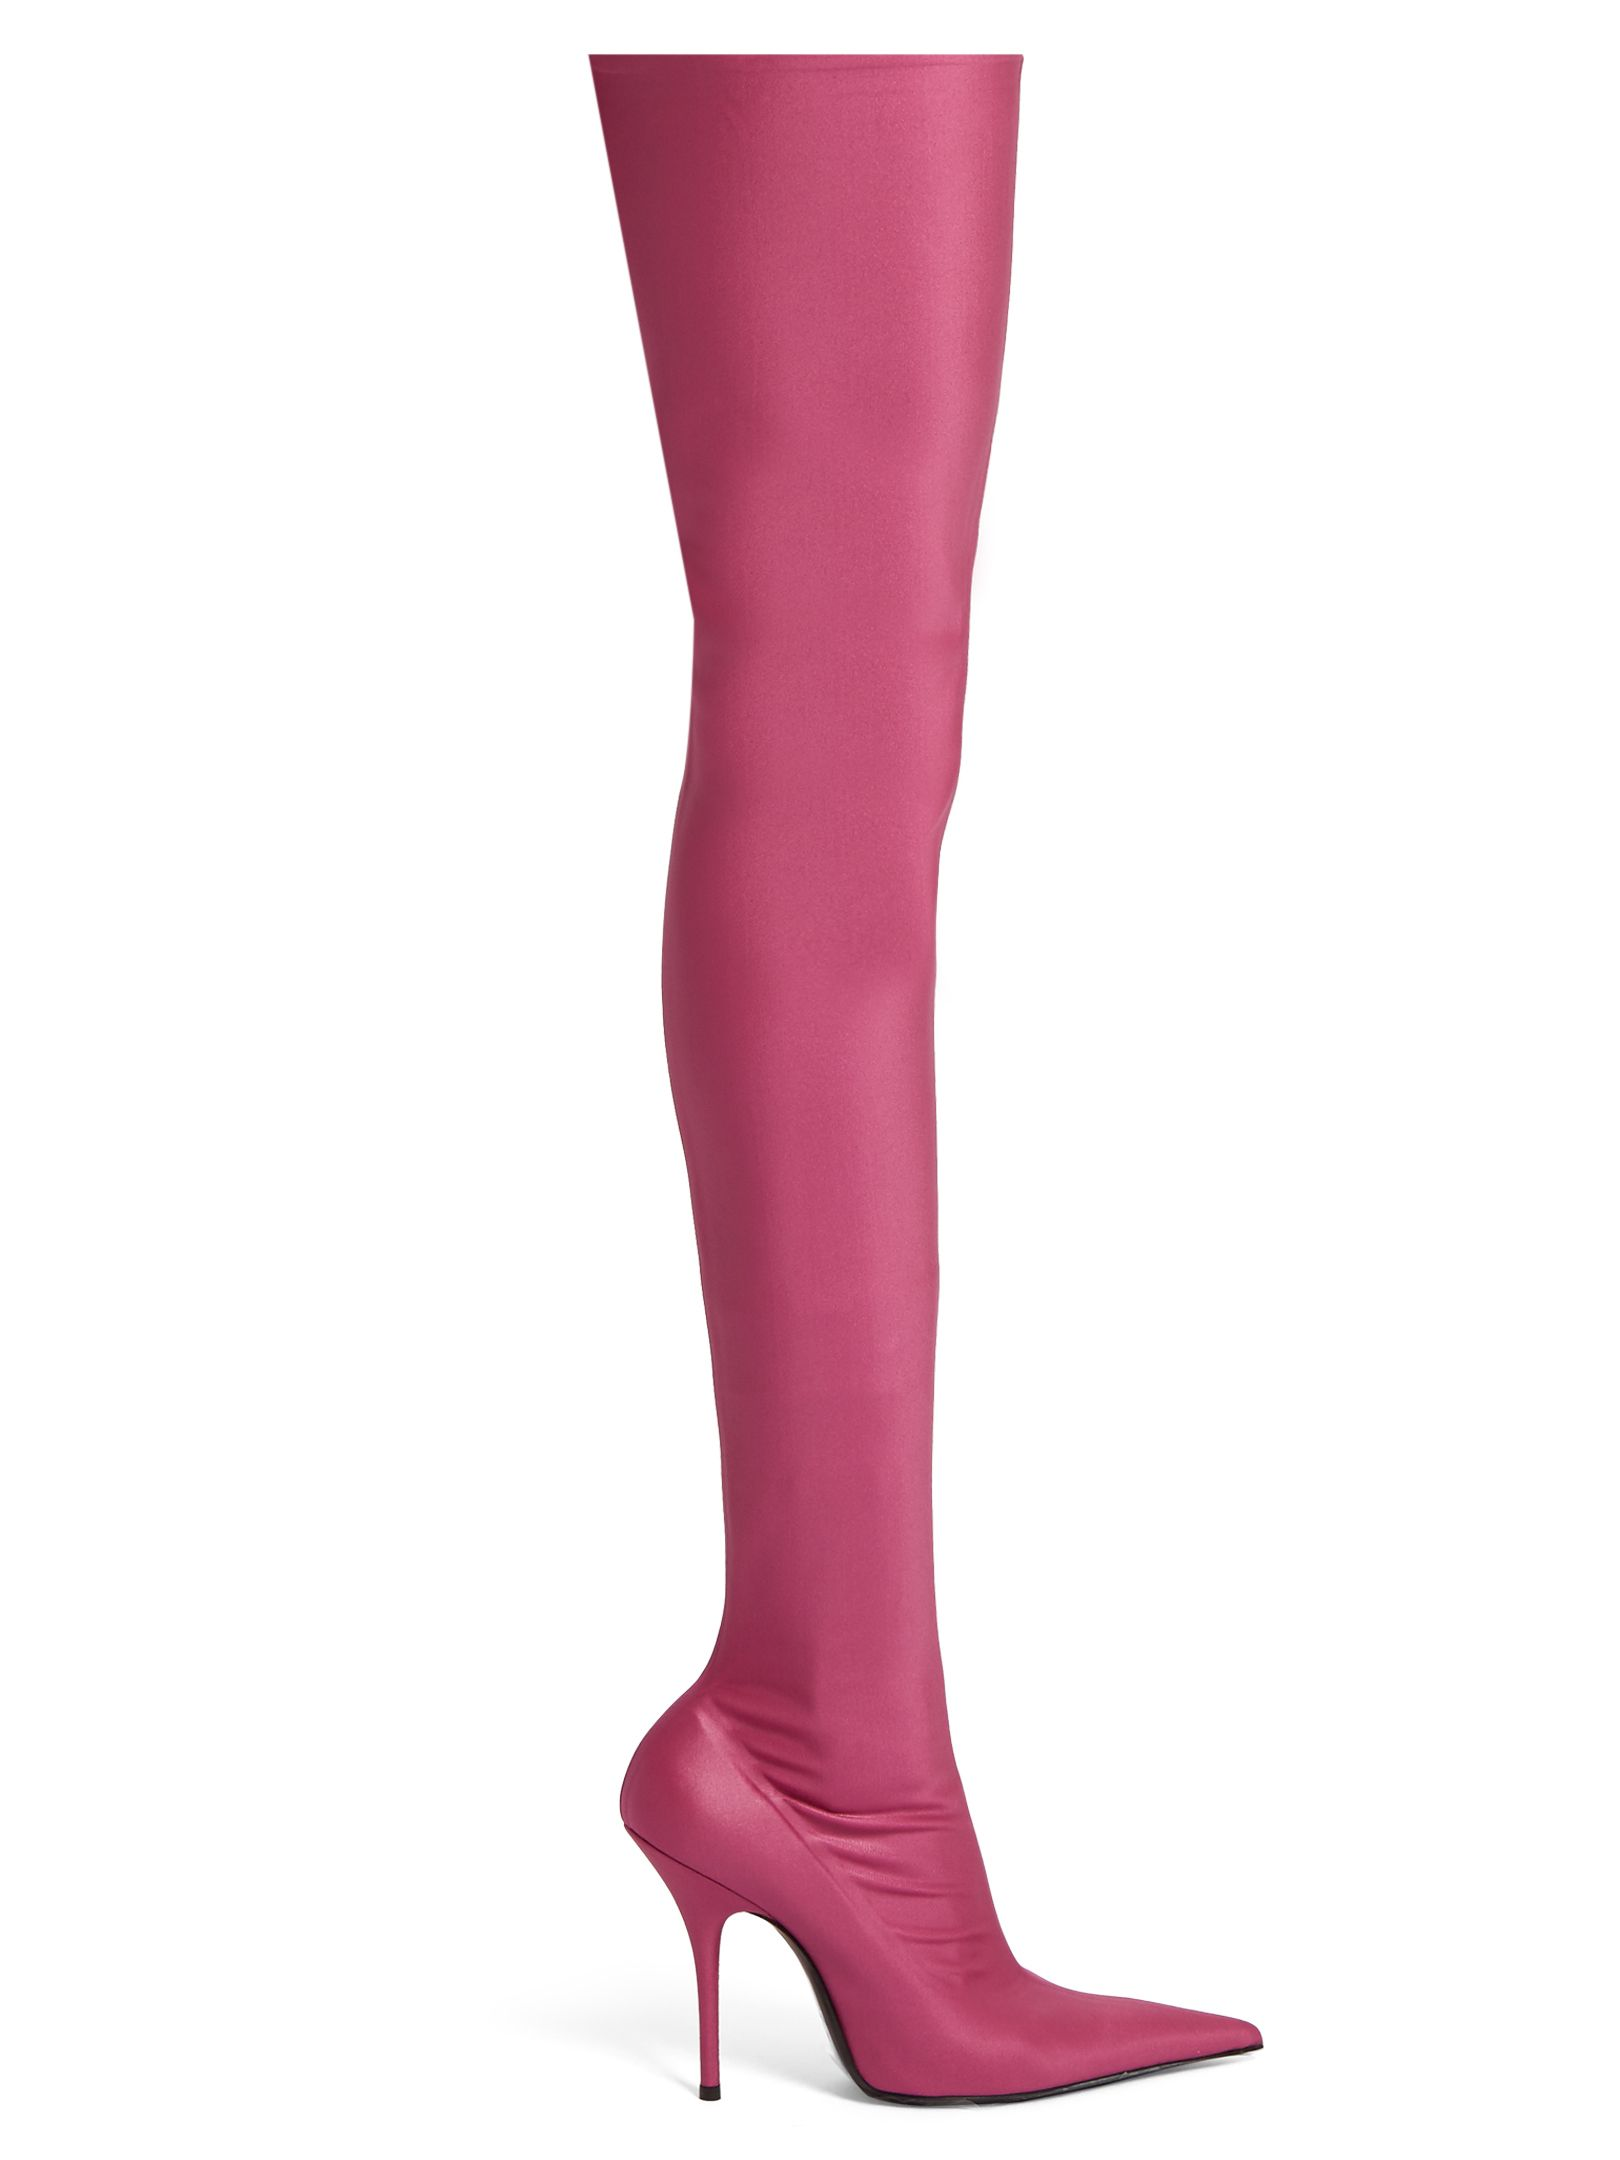 cheap shop for Balenciaga 2017 Logo Over-The-Knee Boots cheap sale new styles free shipping websites cheap sale find great footlocker pictures cheap online e7zzrNb8